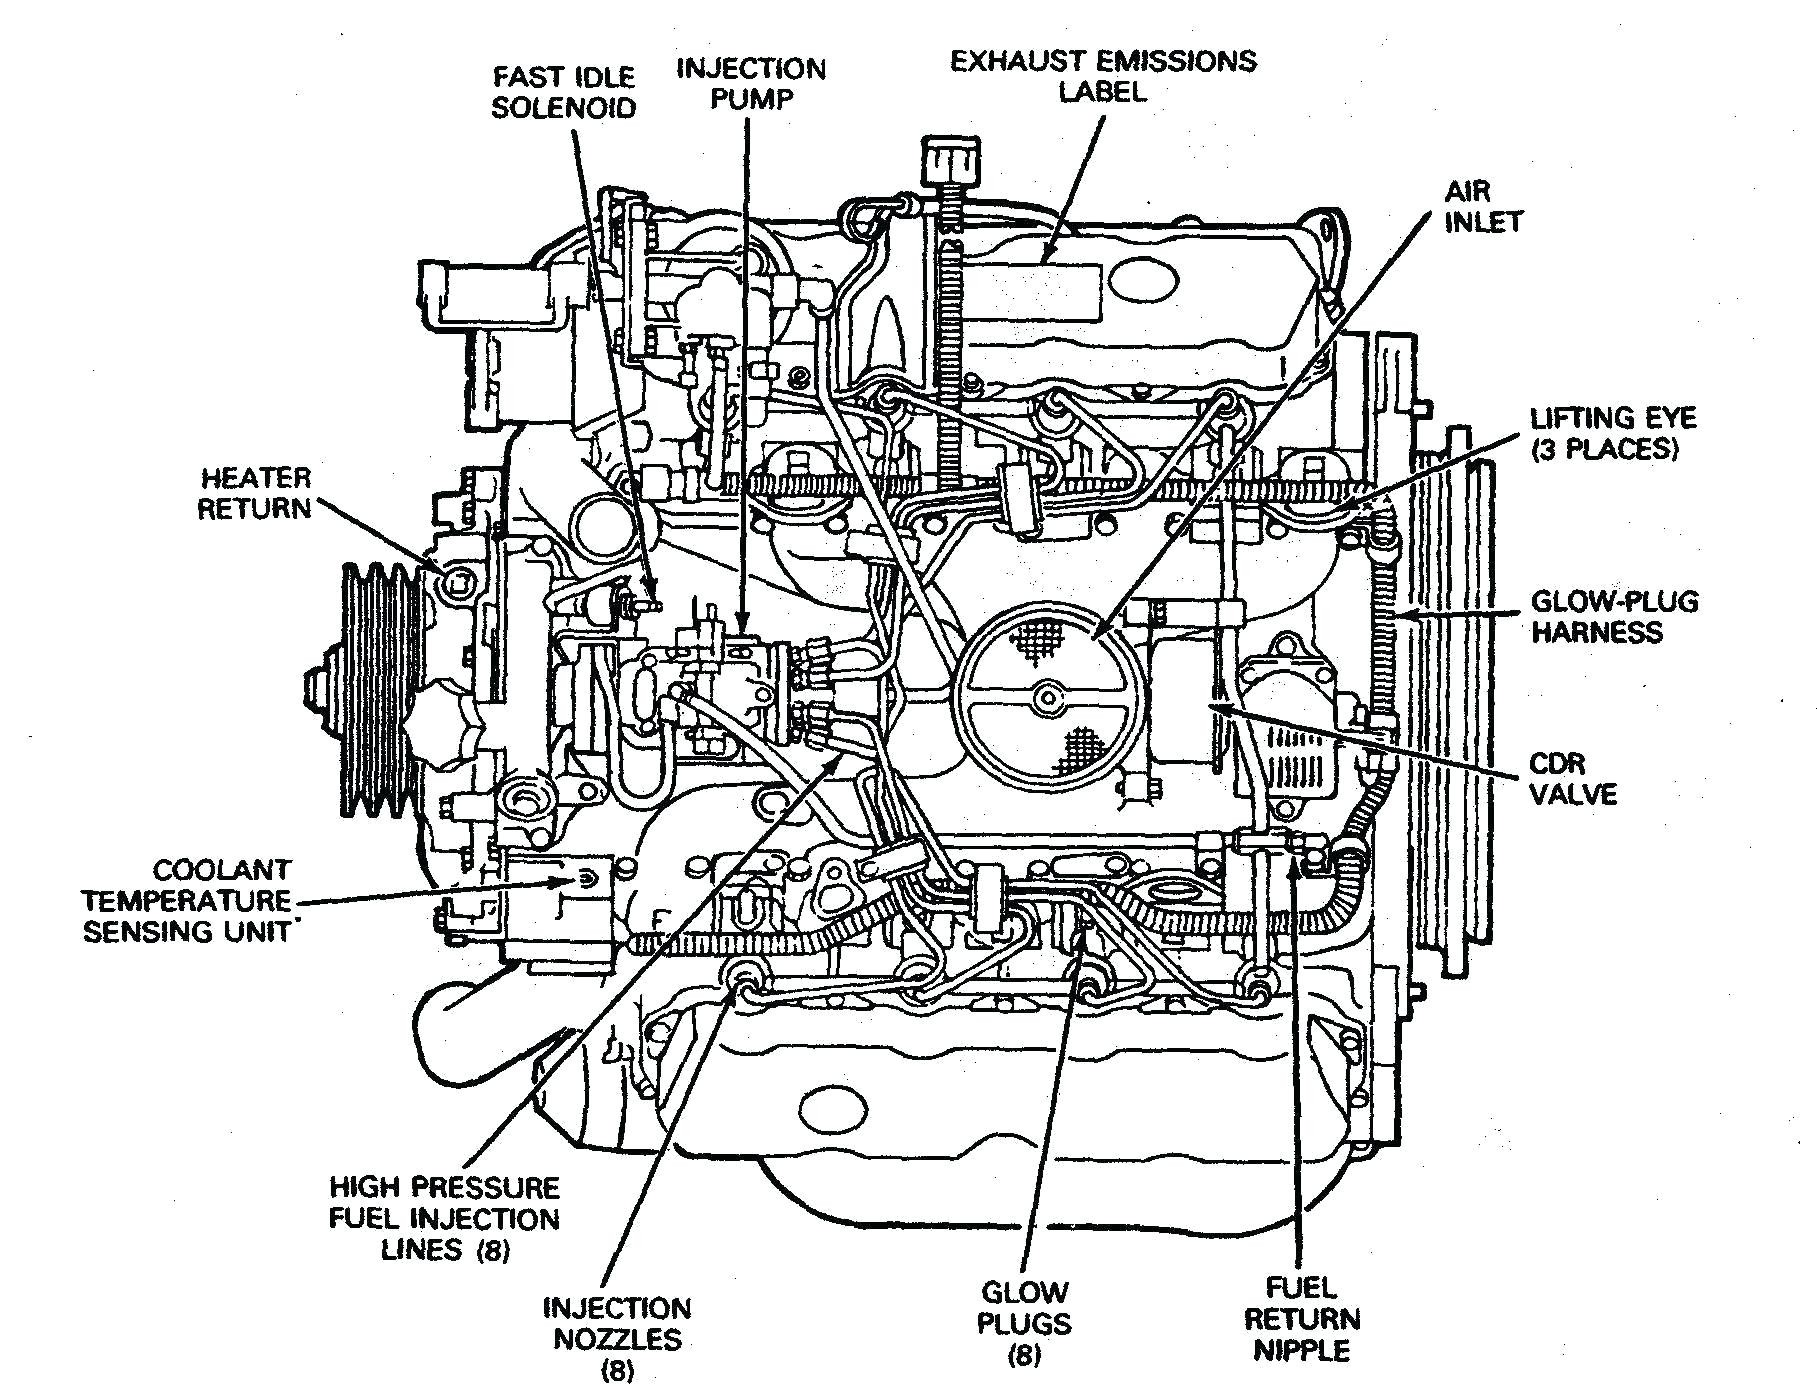 Outboard Engine Diagram Outboard Motor Engine Diagram Website Cool Cars ford 7 3 Parts Of Outboard Engine Diagram